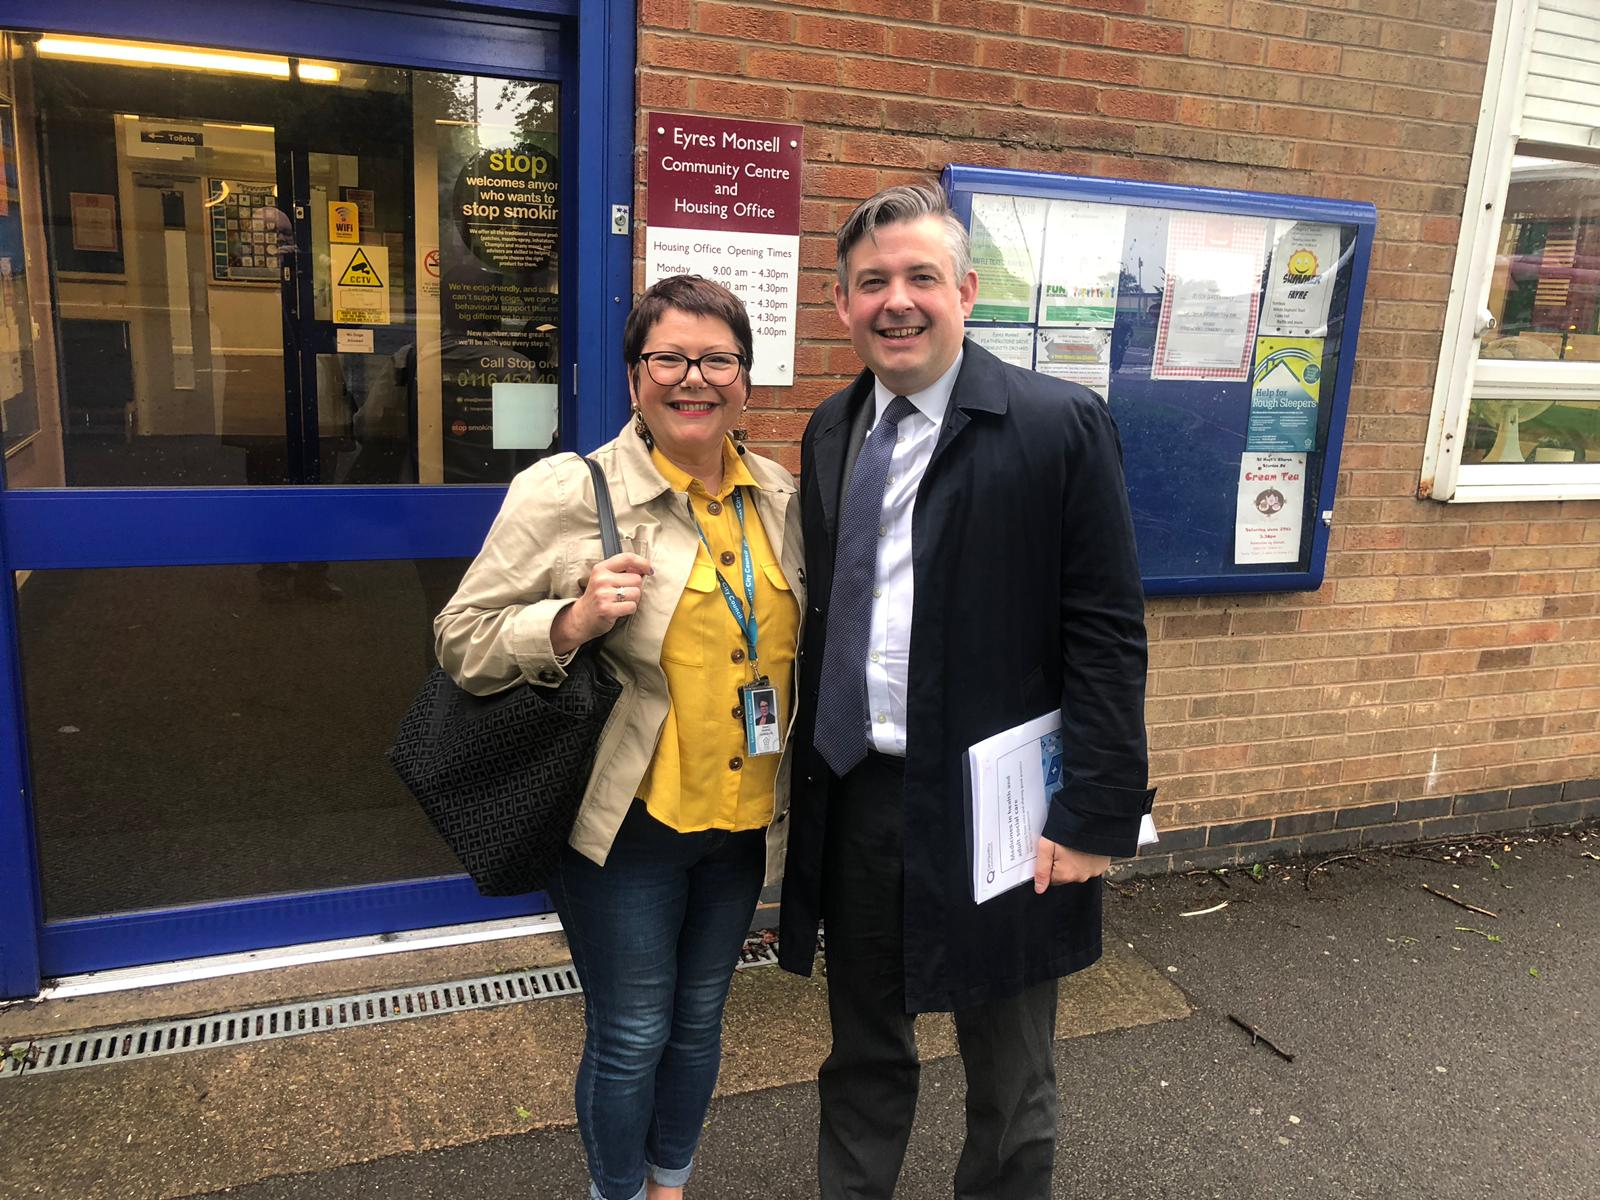 Jon out and about in Eyres Monsell with Councillor Elaine Pantling after a busy advice session - Friday June 7 2019